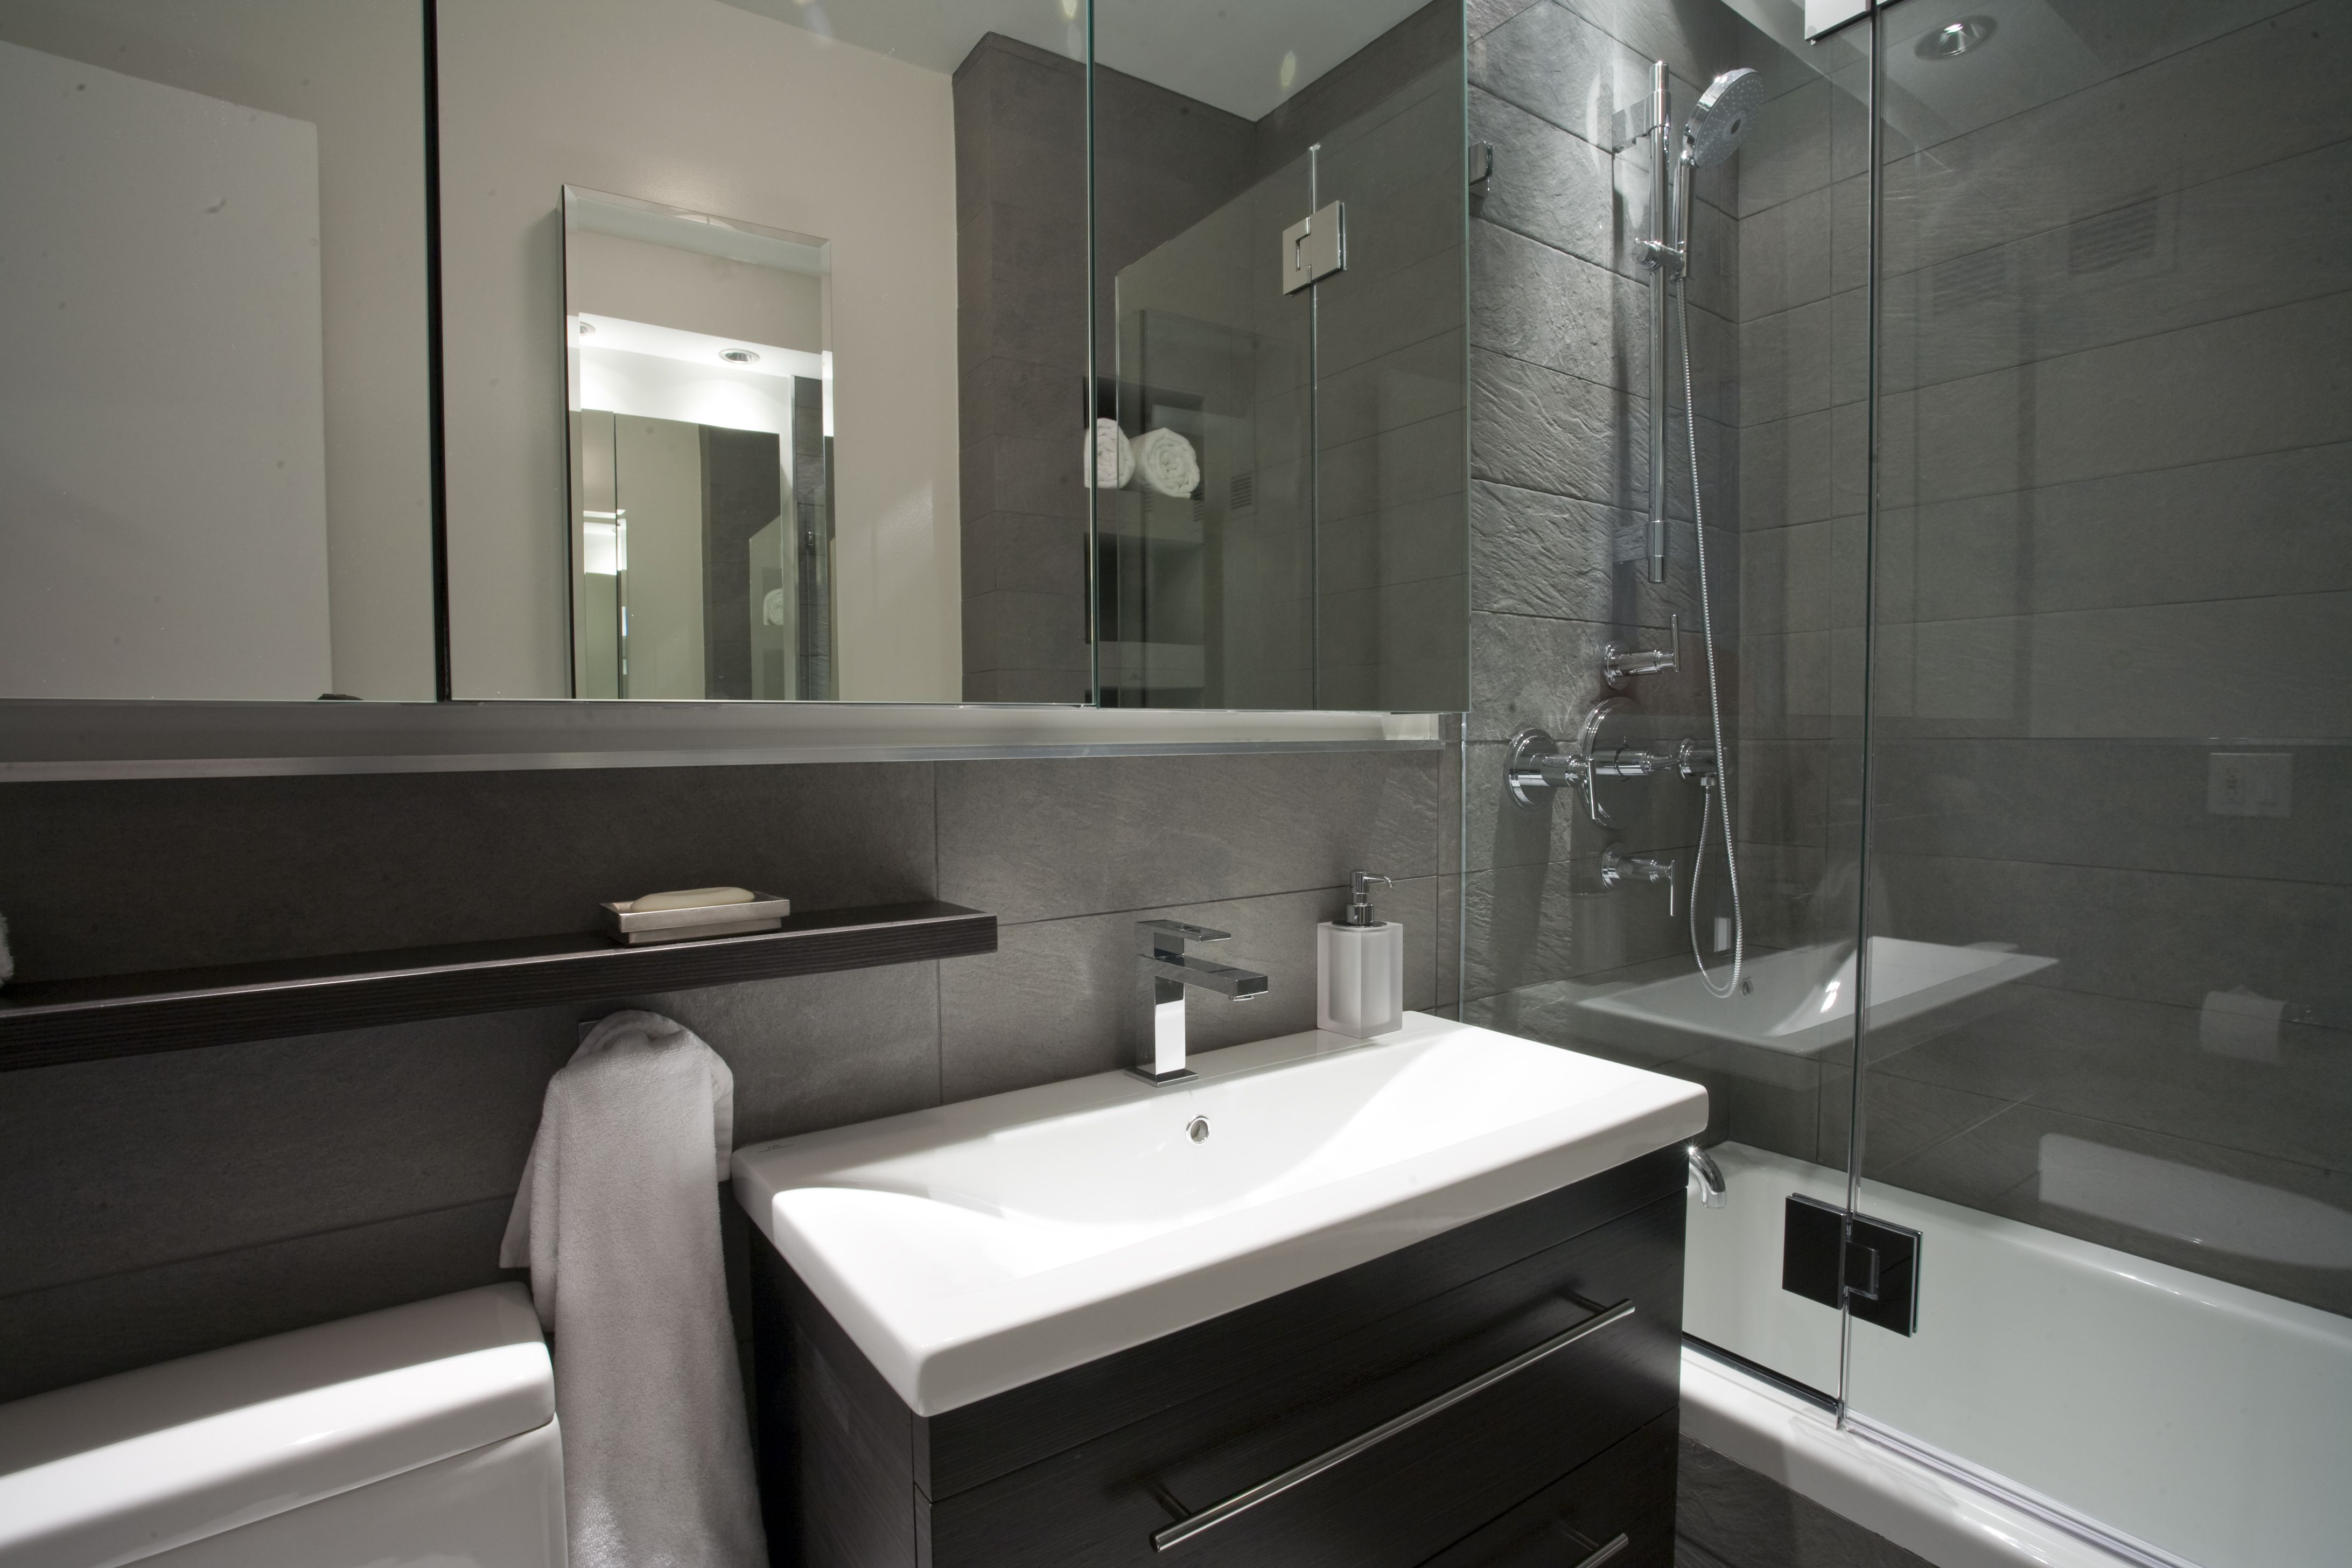 1000+ images about bathroom ideas on Pinterest - ^